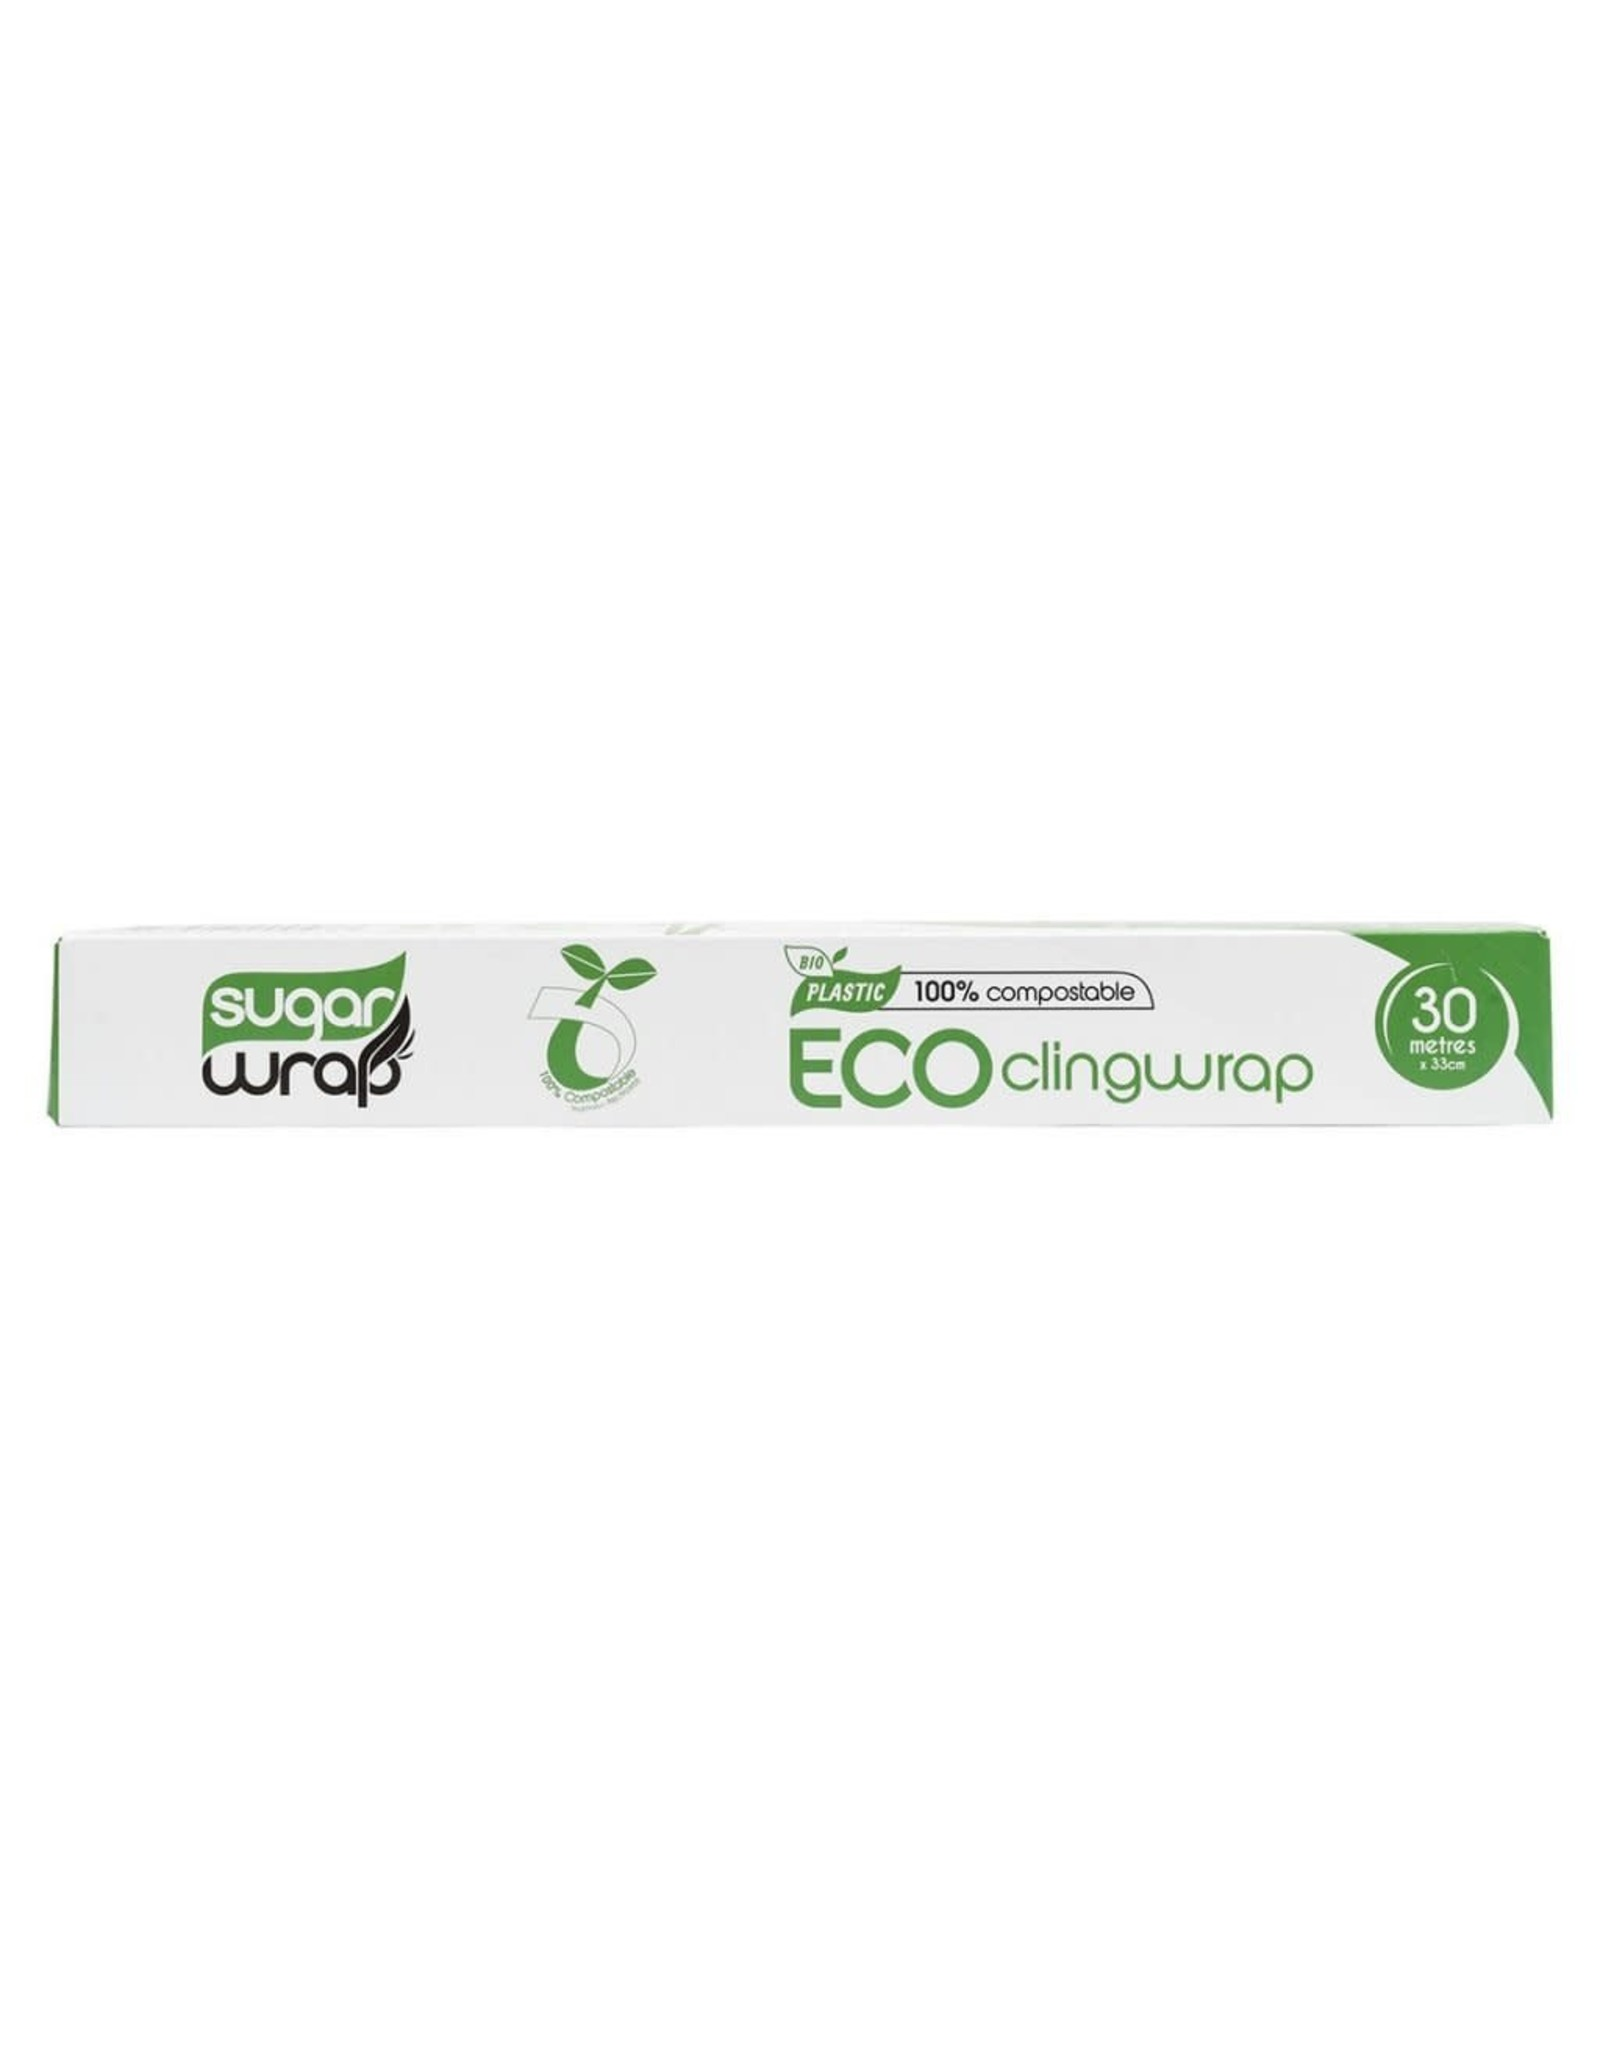 Sugarwrap Eco Clingwrap - 100% Compostable - 30m x 33cm